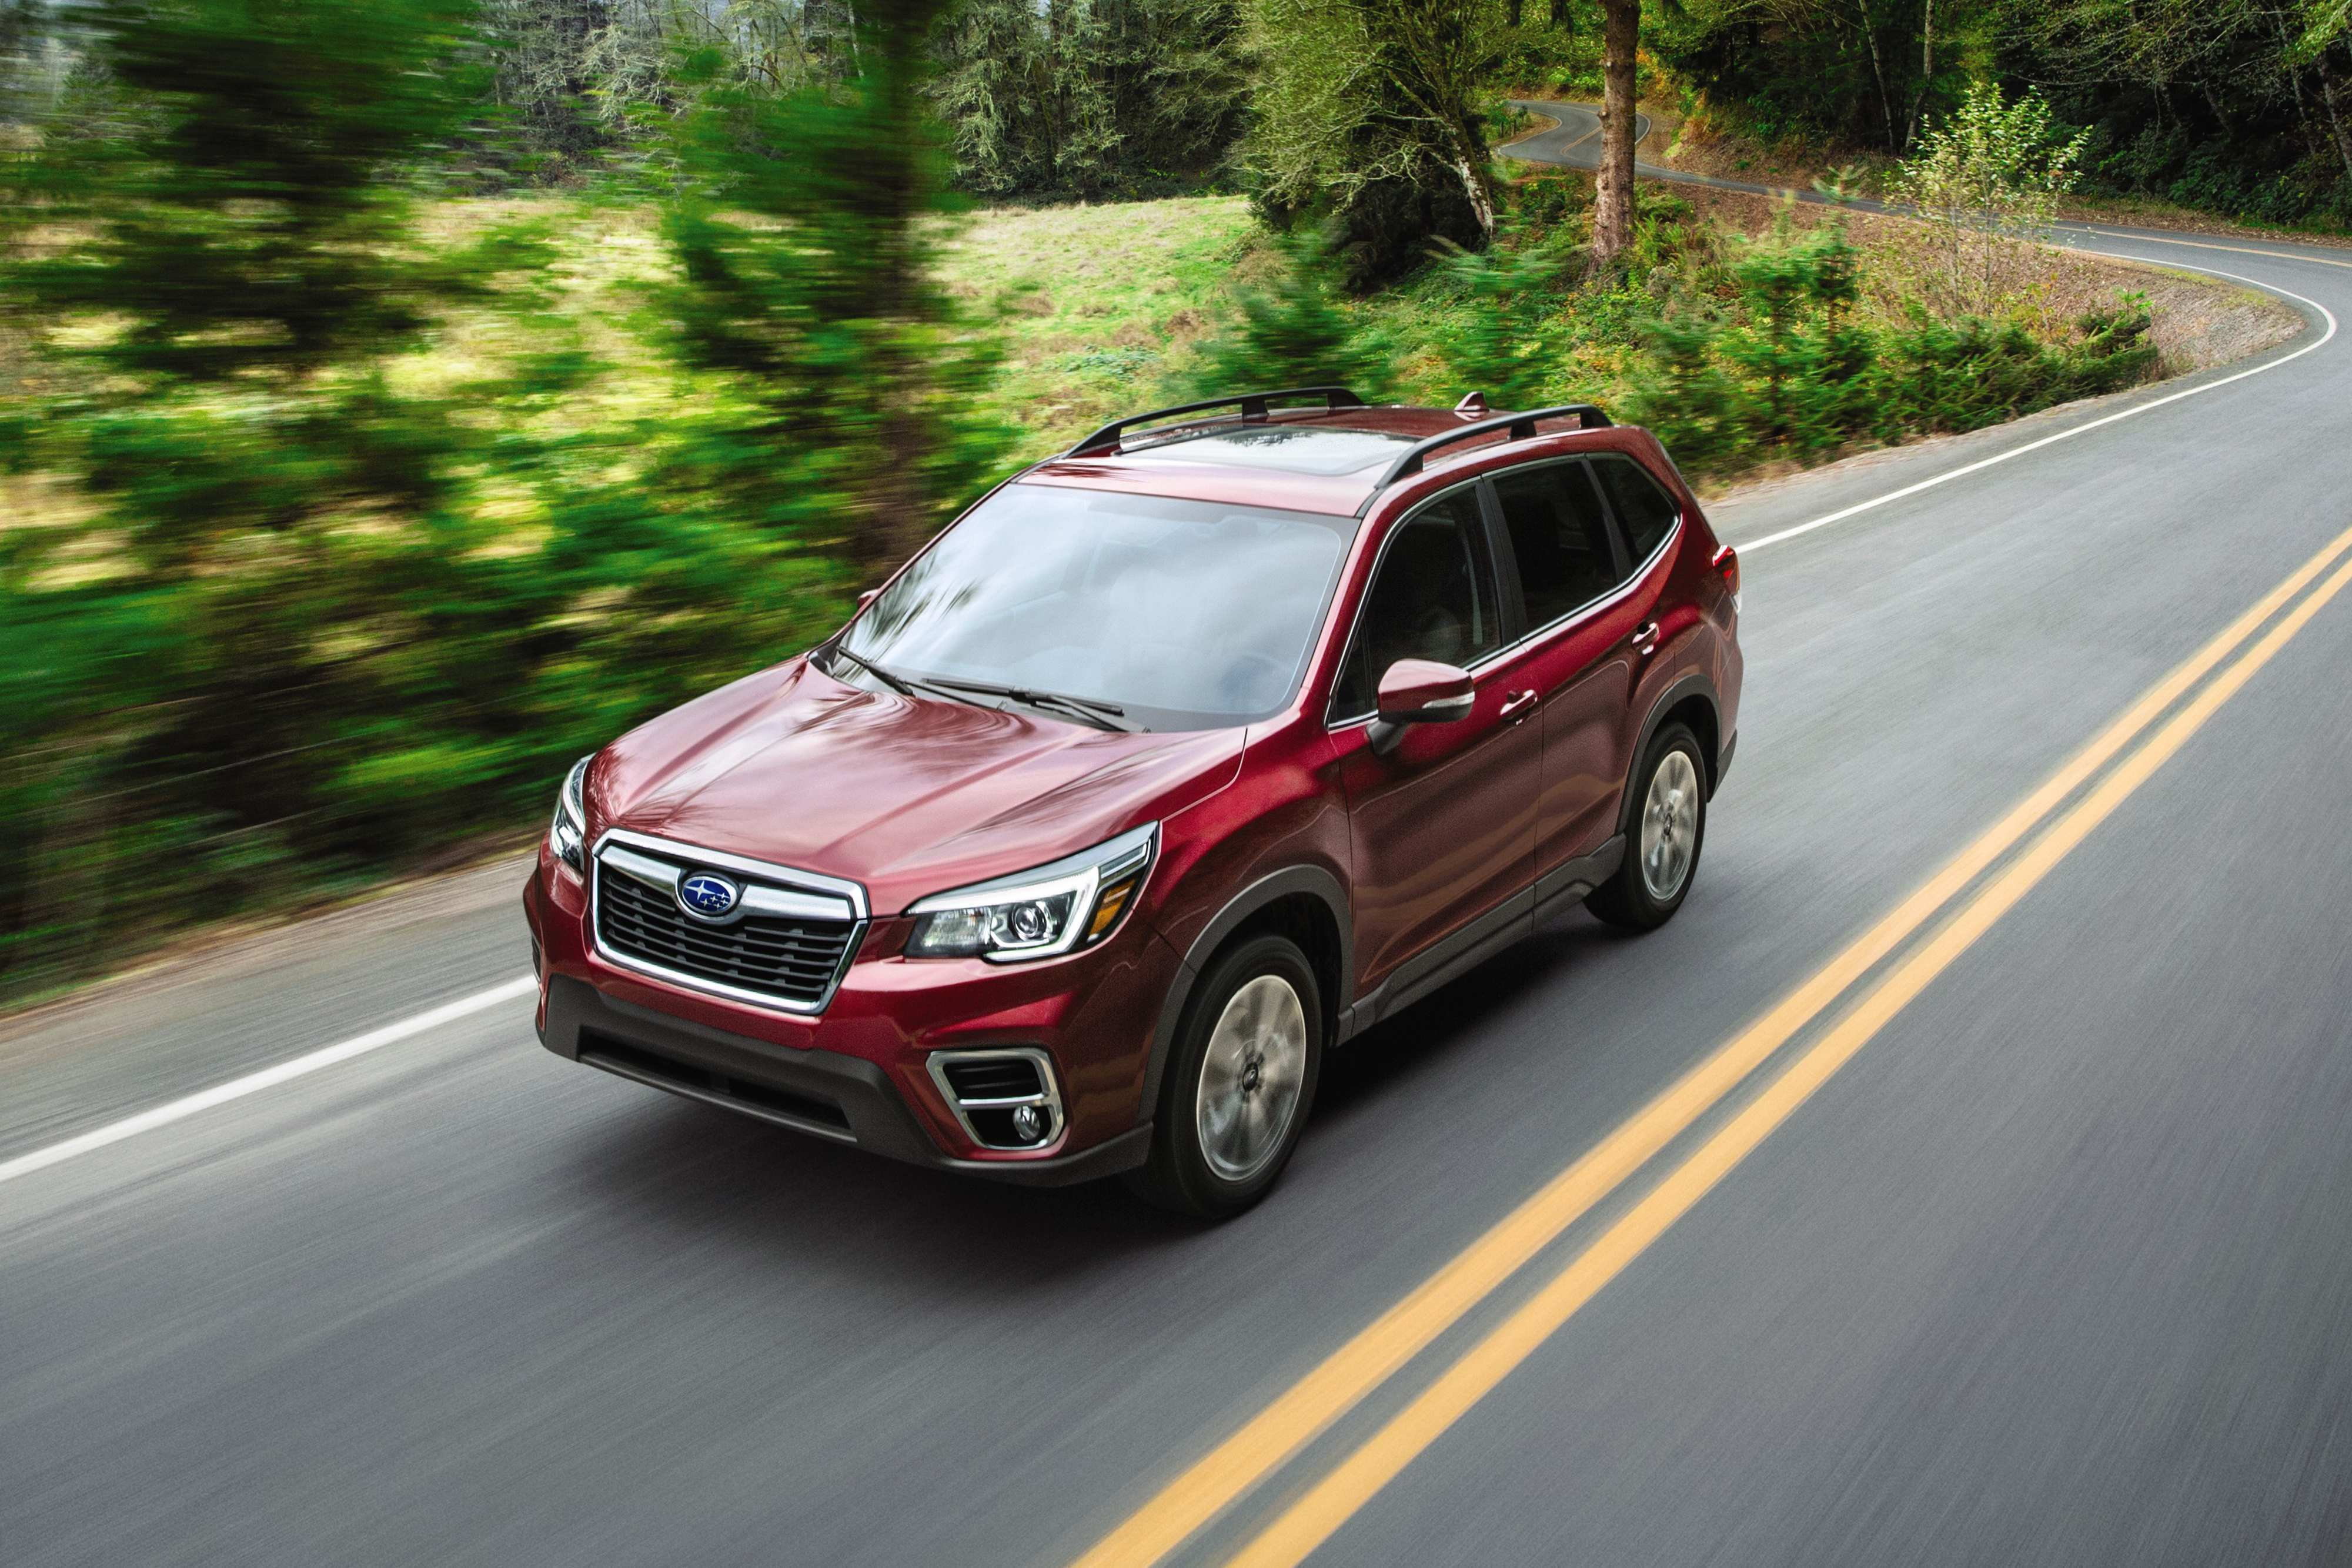 39 A Subaru Forester All New 2020 Concept And Review